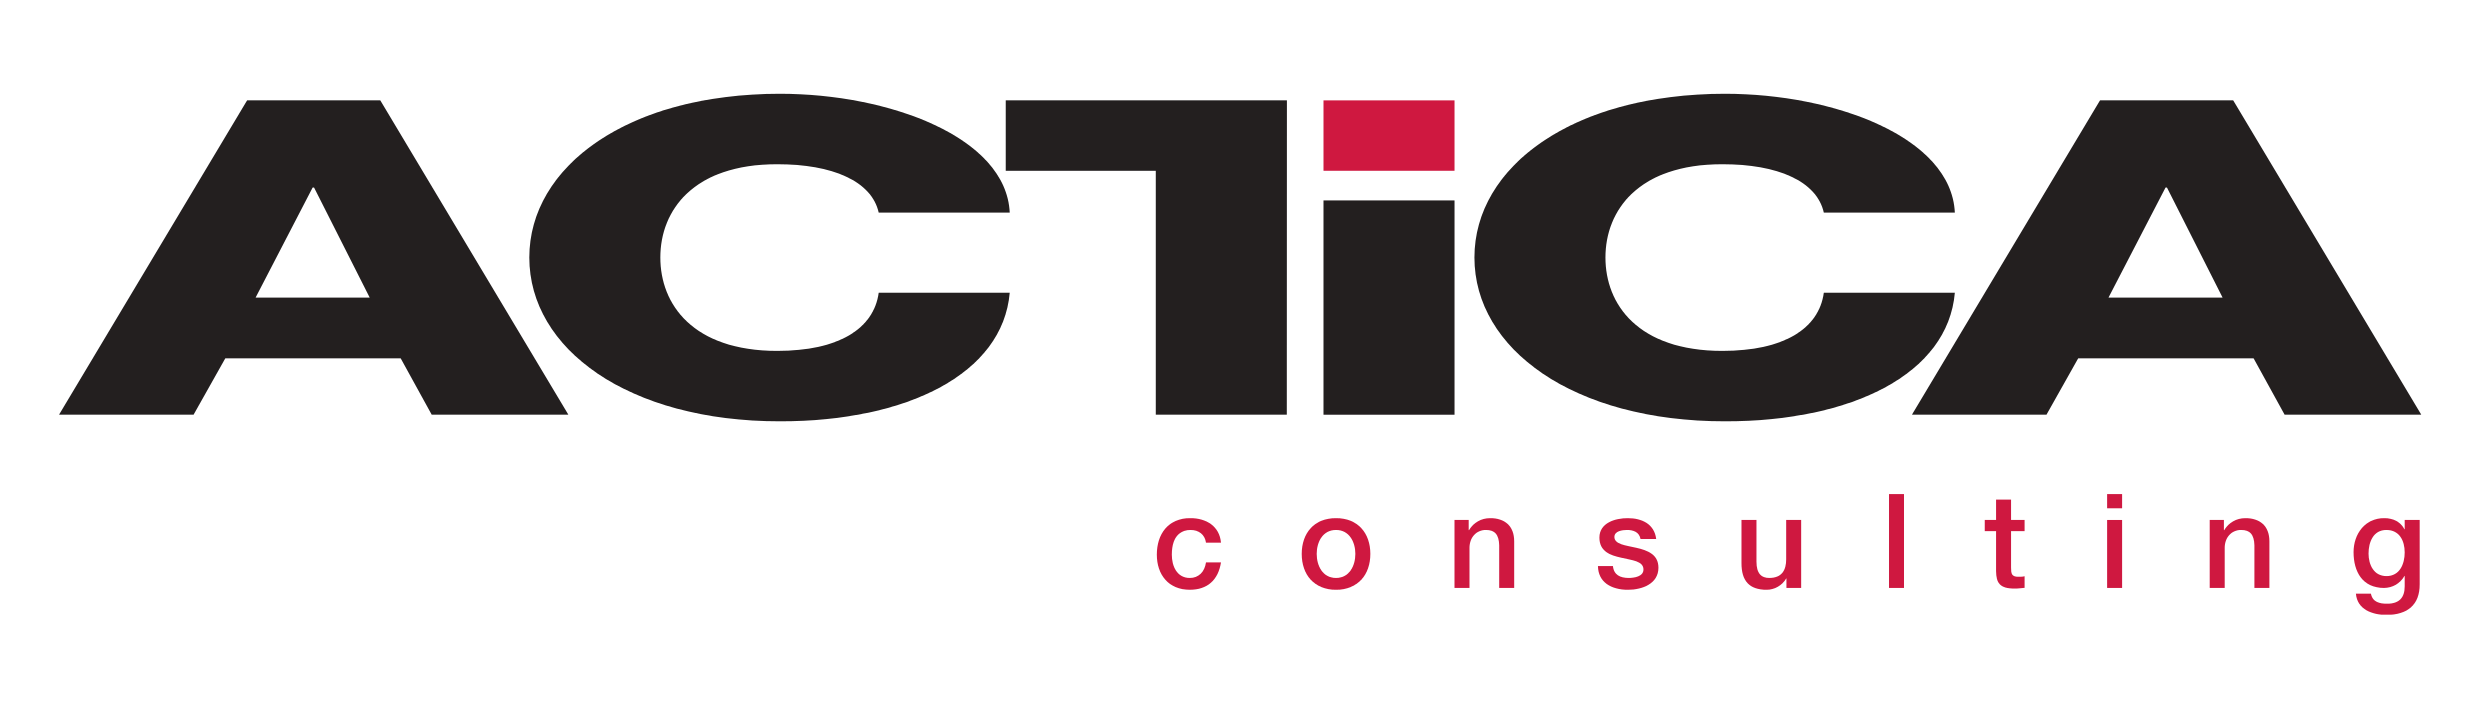 Actica Consulting Ltd logo